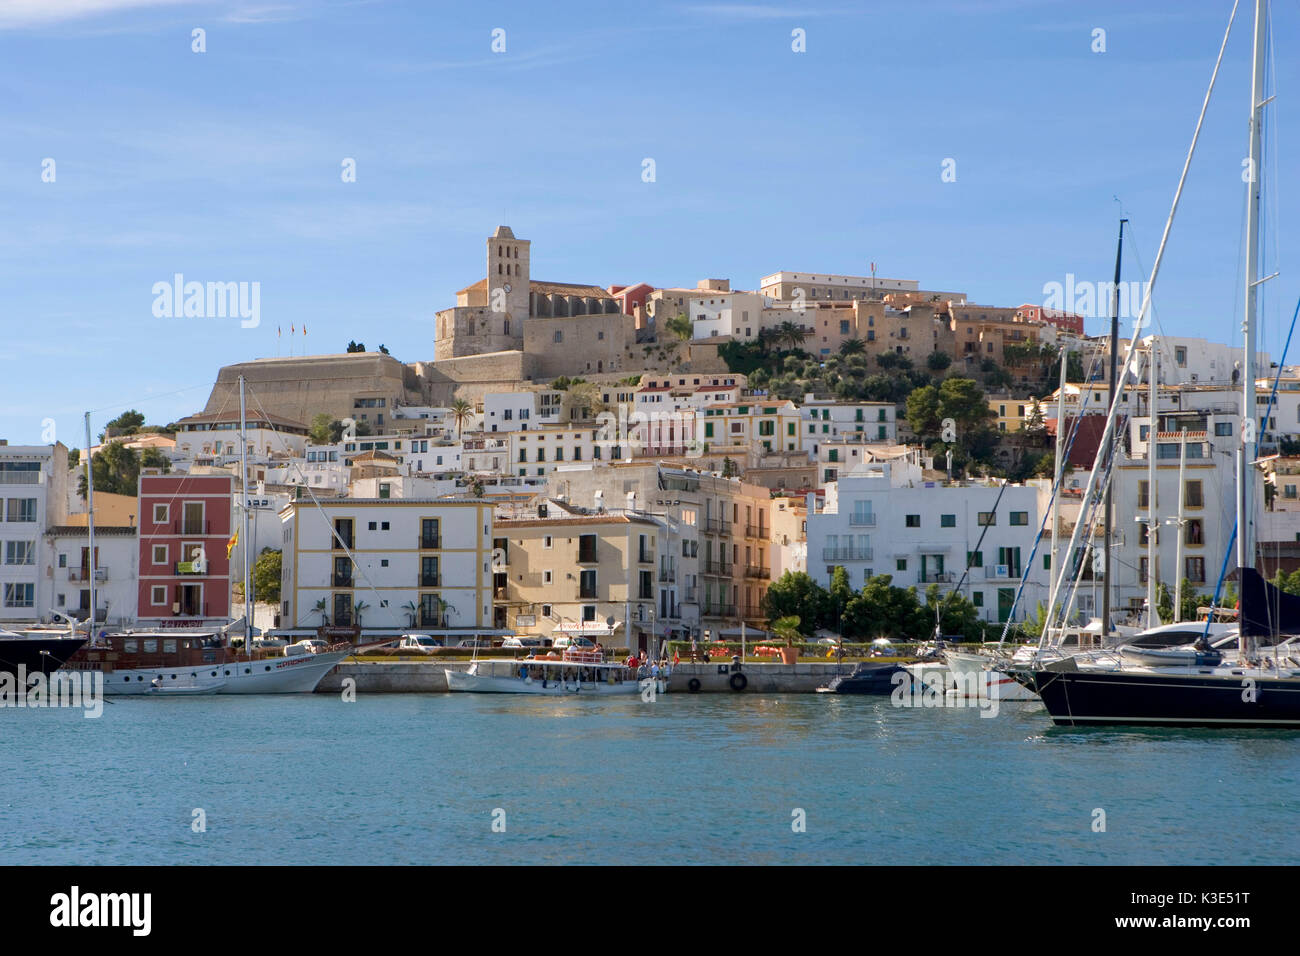 ibiza eivissa altstadt stock photos ibiza eivissa altstadt stock images alamy. Black Bedroom Furniture Sets. Home Design Ideas